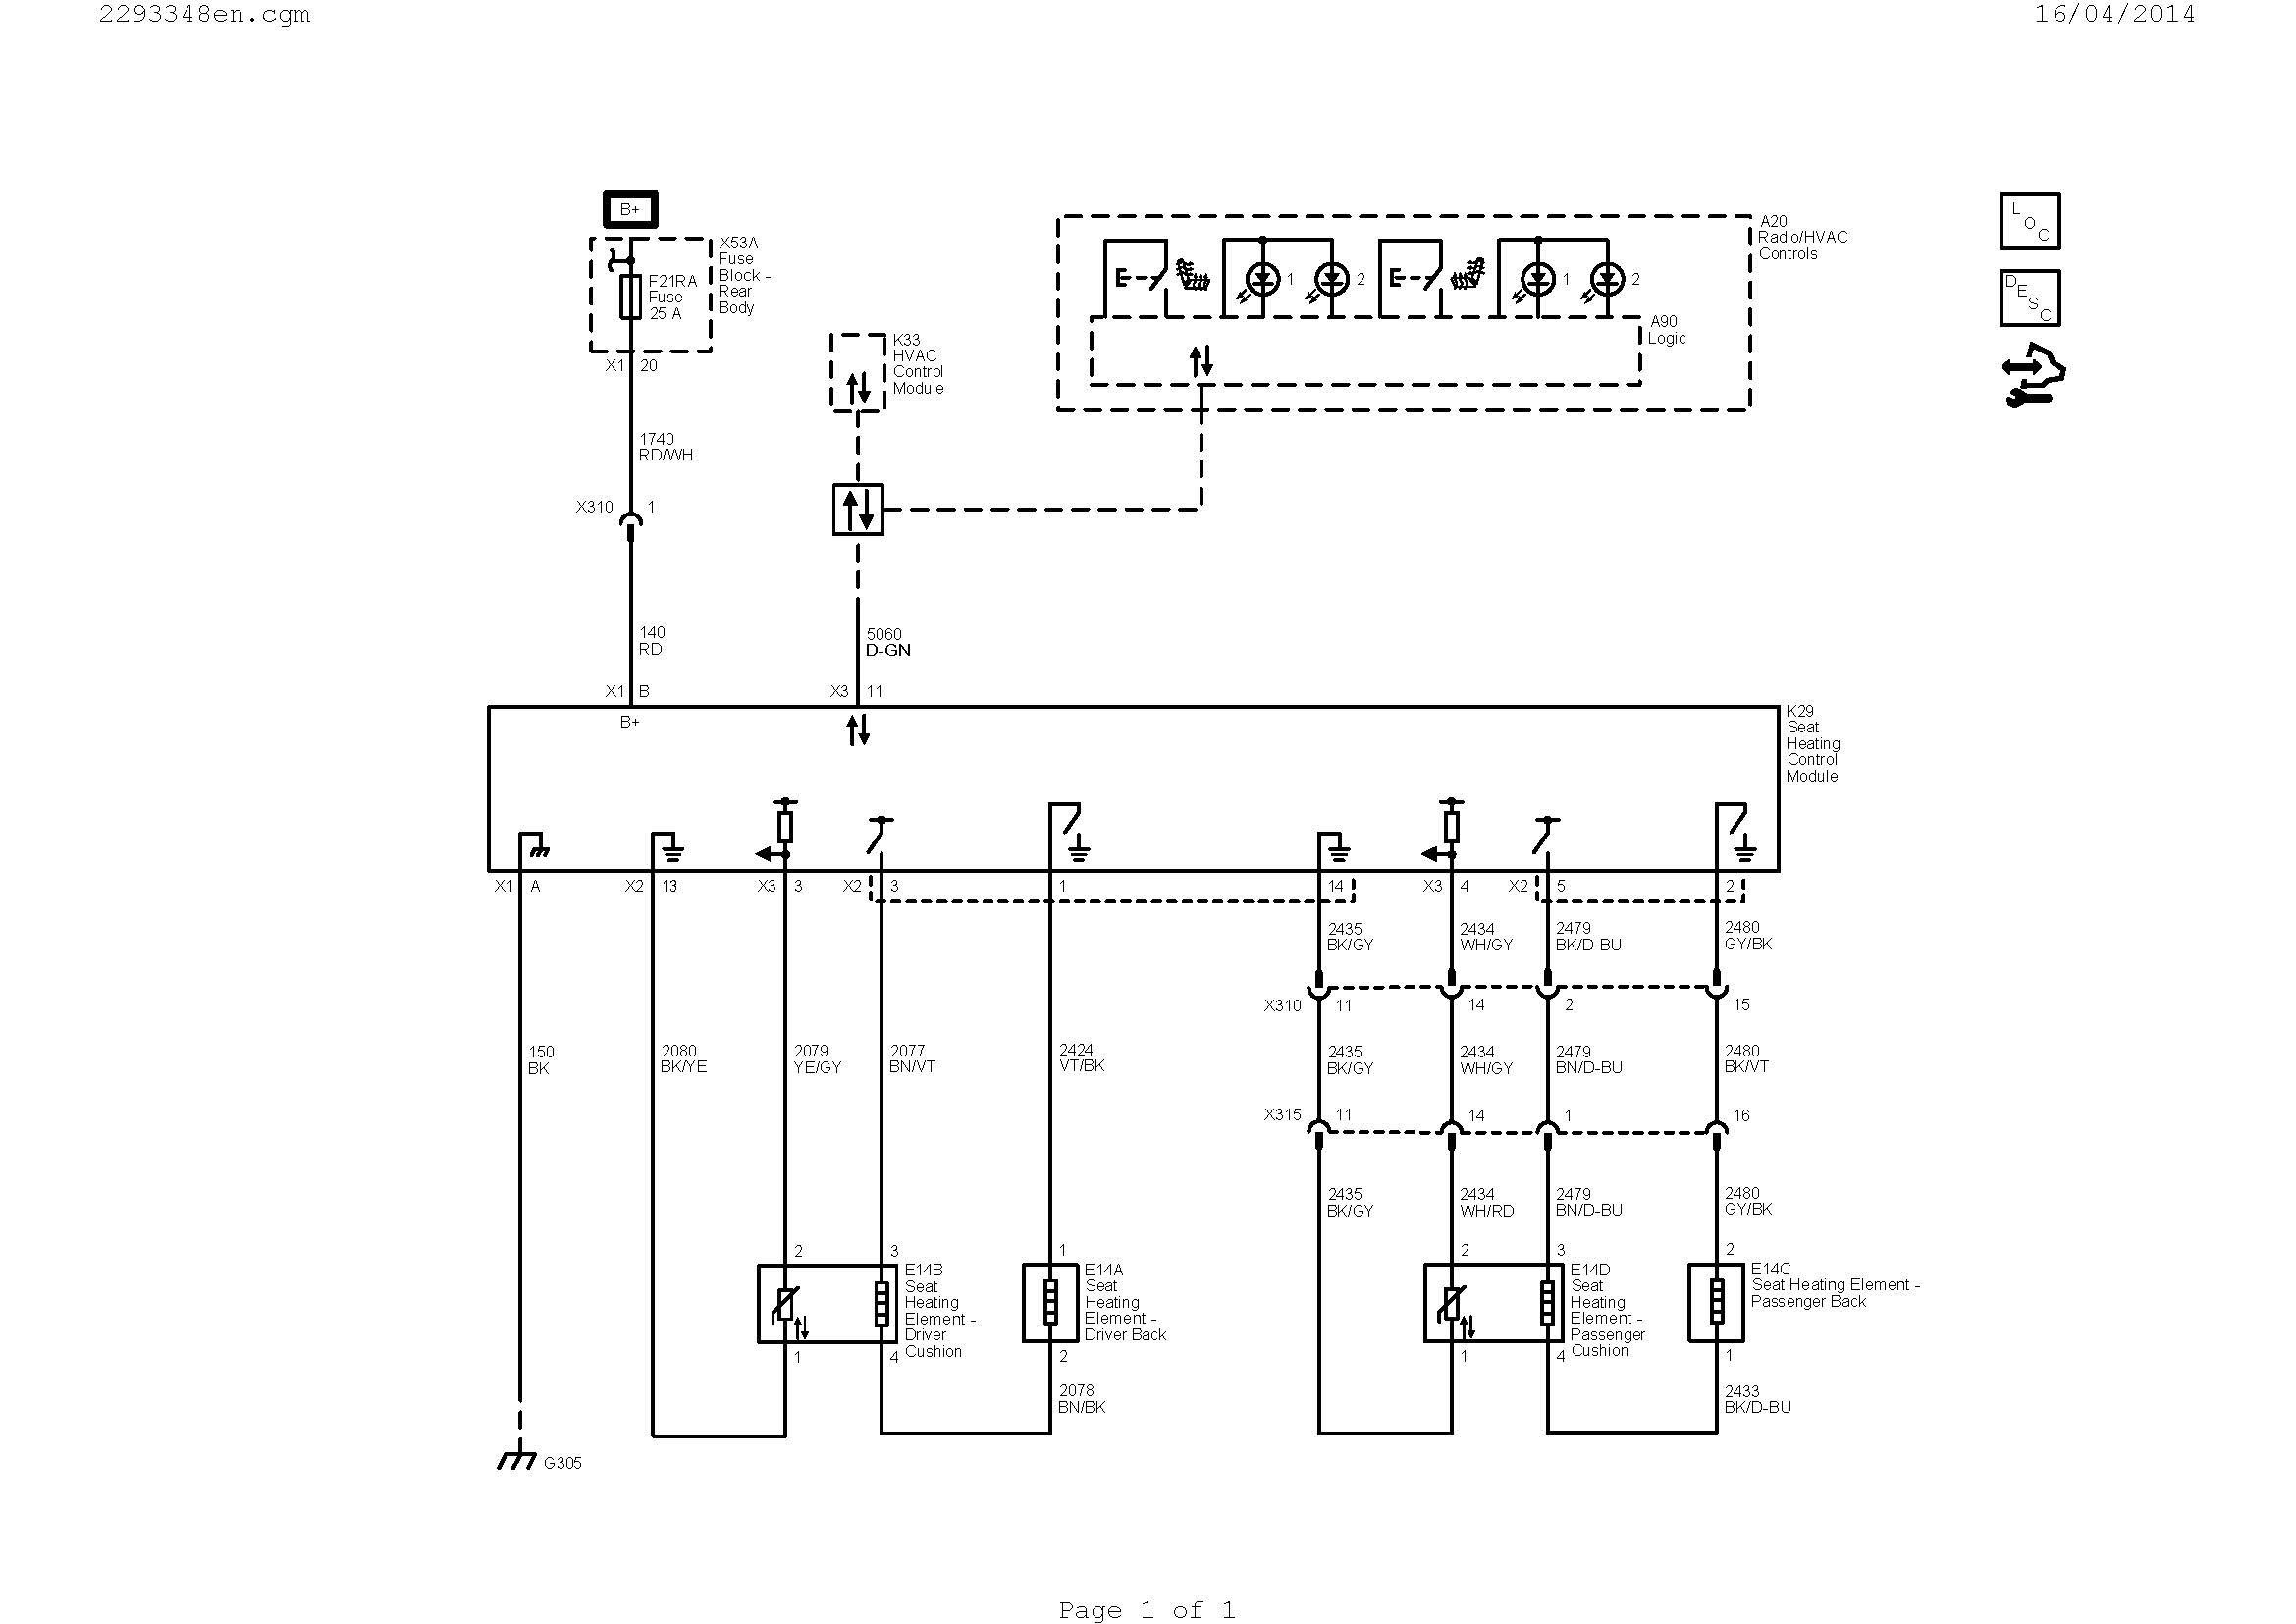 ac thermostat wiring diagram Collection-Nest Wireless thermostat Wiring Diagram Refrence Wiring Diagram Ac Valid Hvac Diagram Best Hvac Diagram 0d 8-q